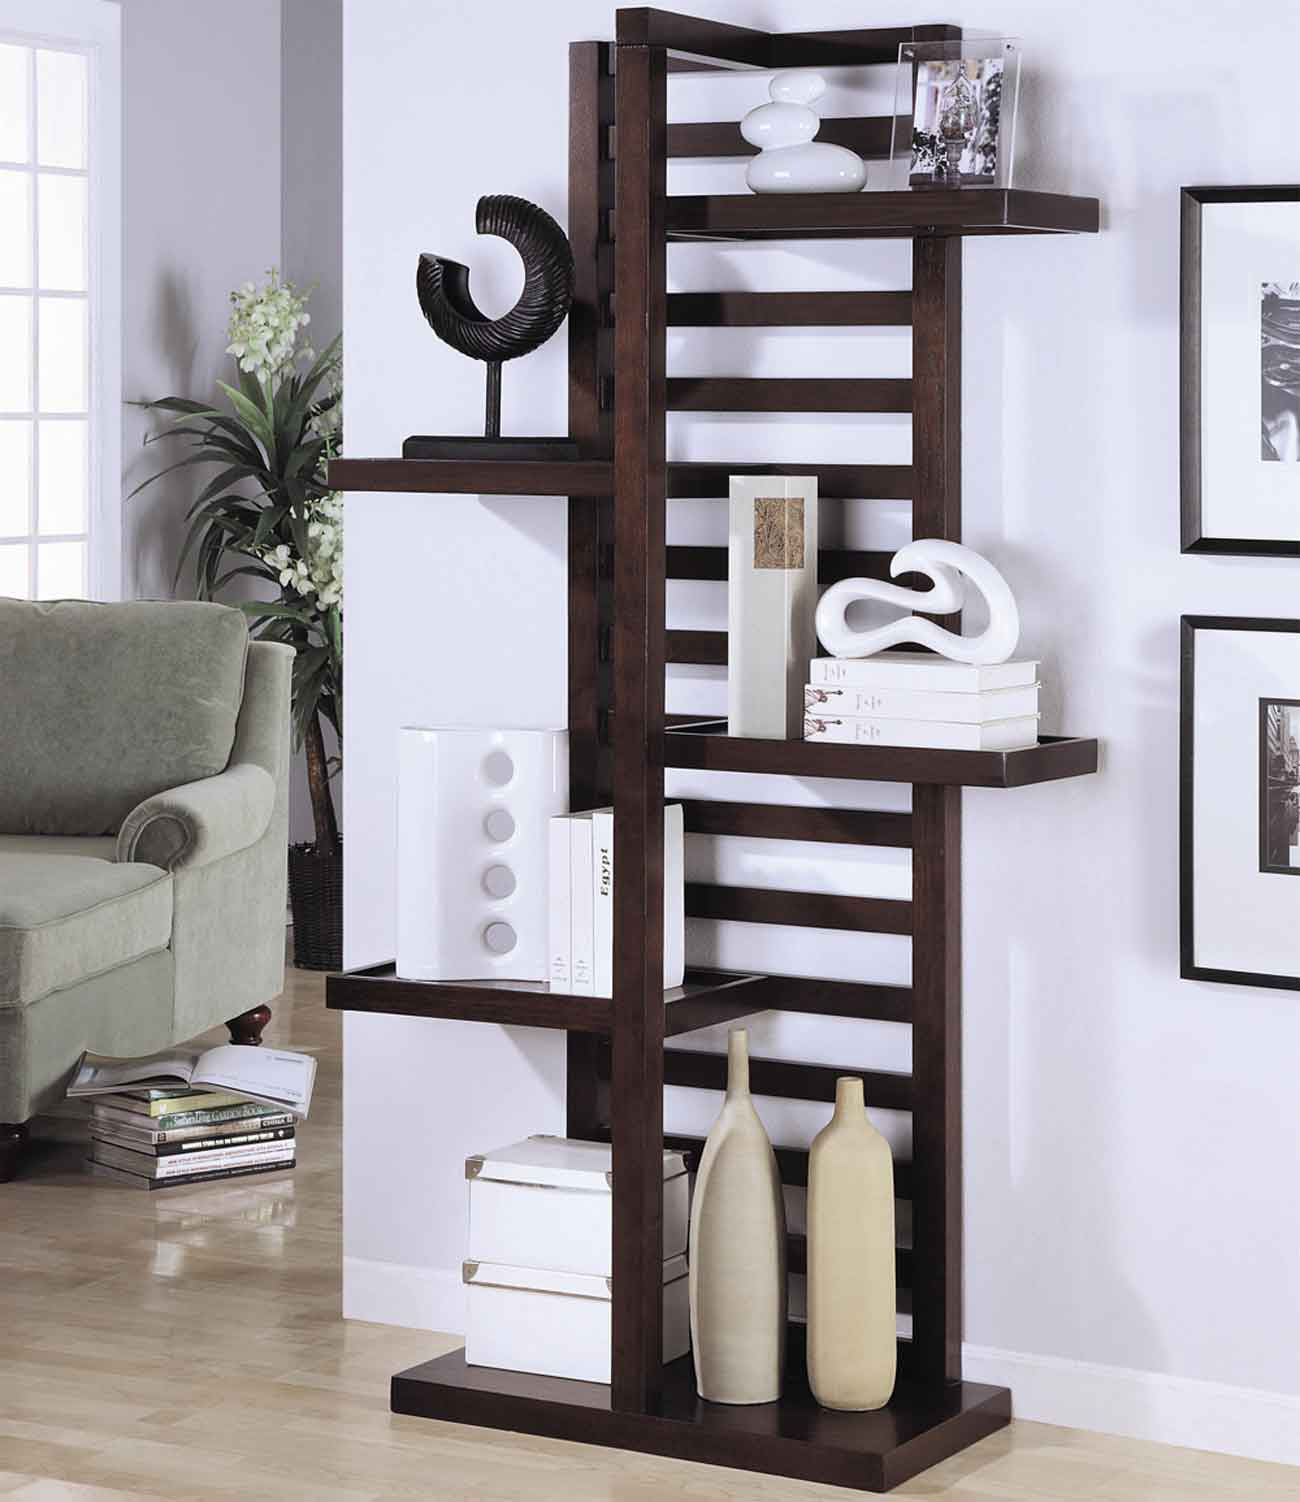 Contemporary Los Angeles Bookcases in Asymmetrical Design